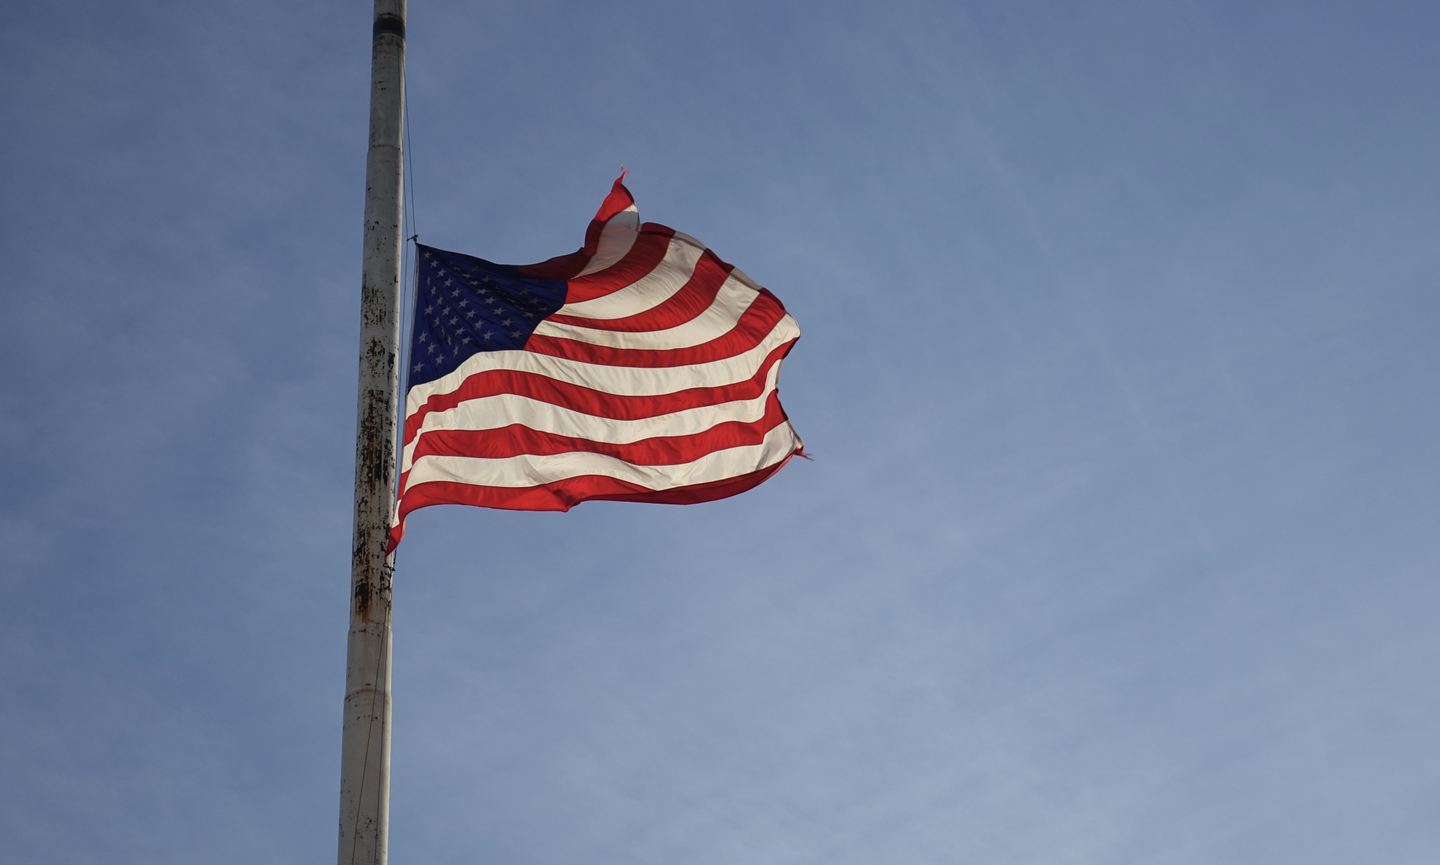 An American flag at half-mast in honor of Memorial Day.